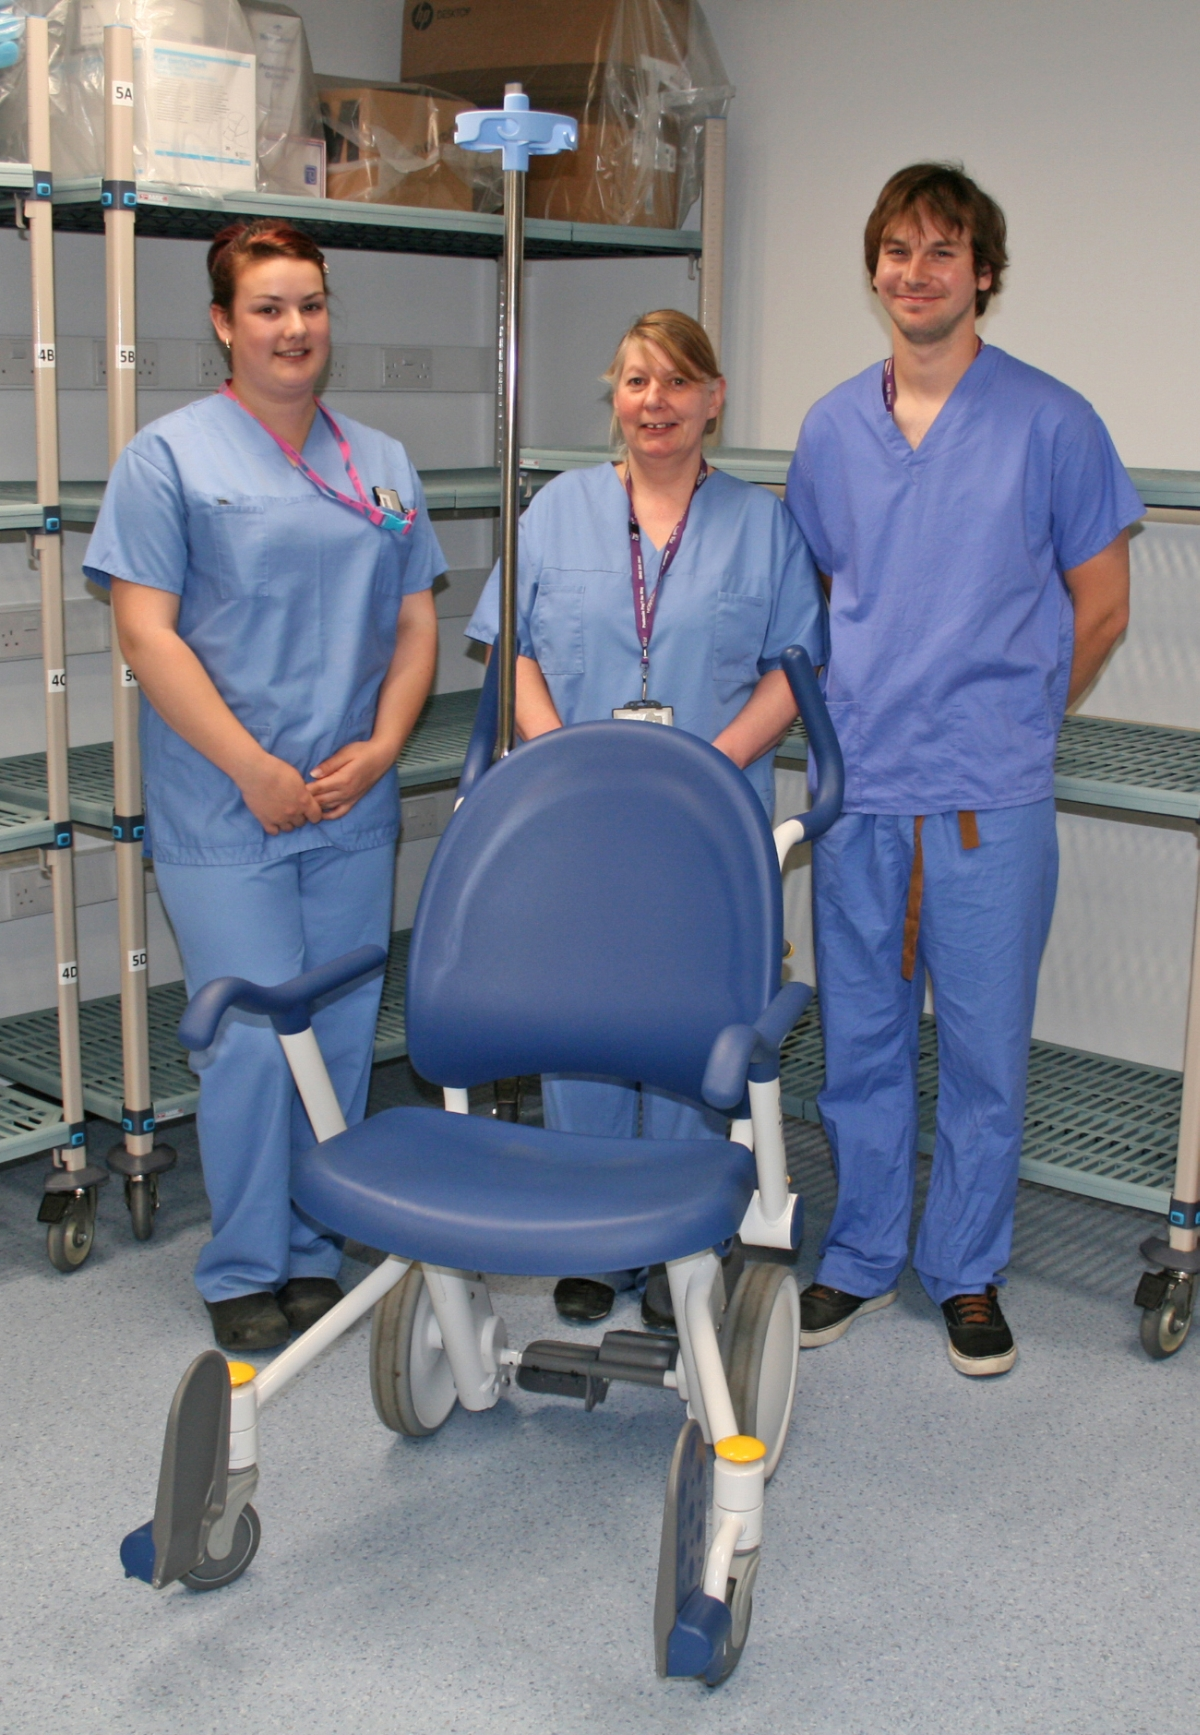 New wheelchairs roll into action at Dorset County Hospital